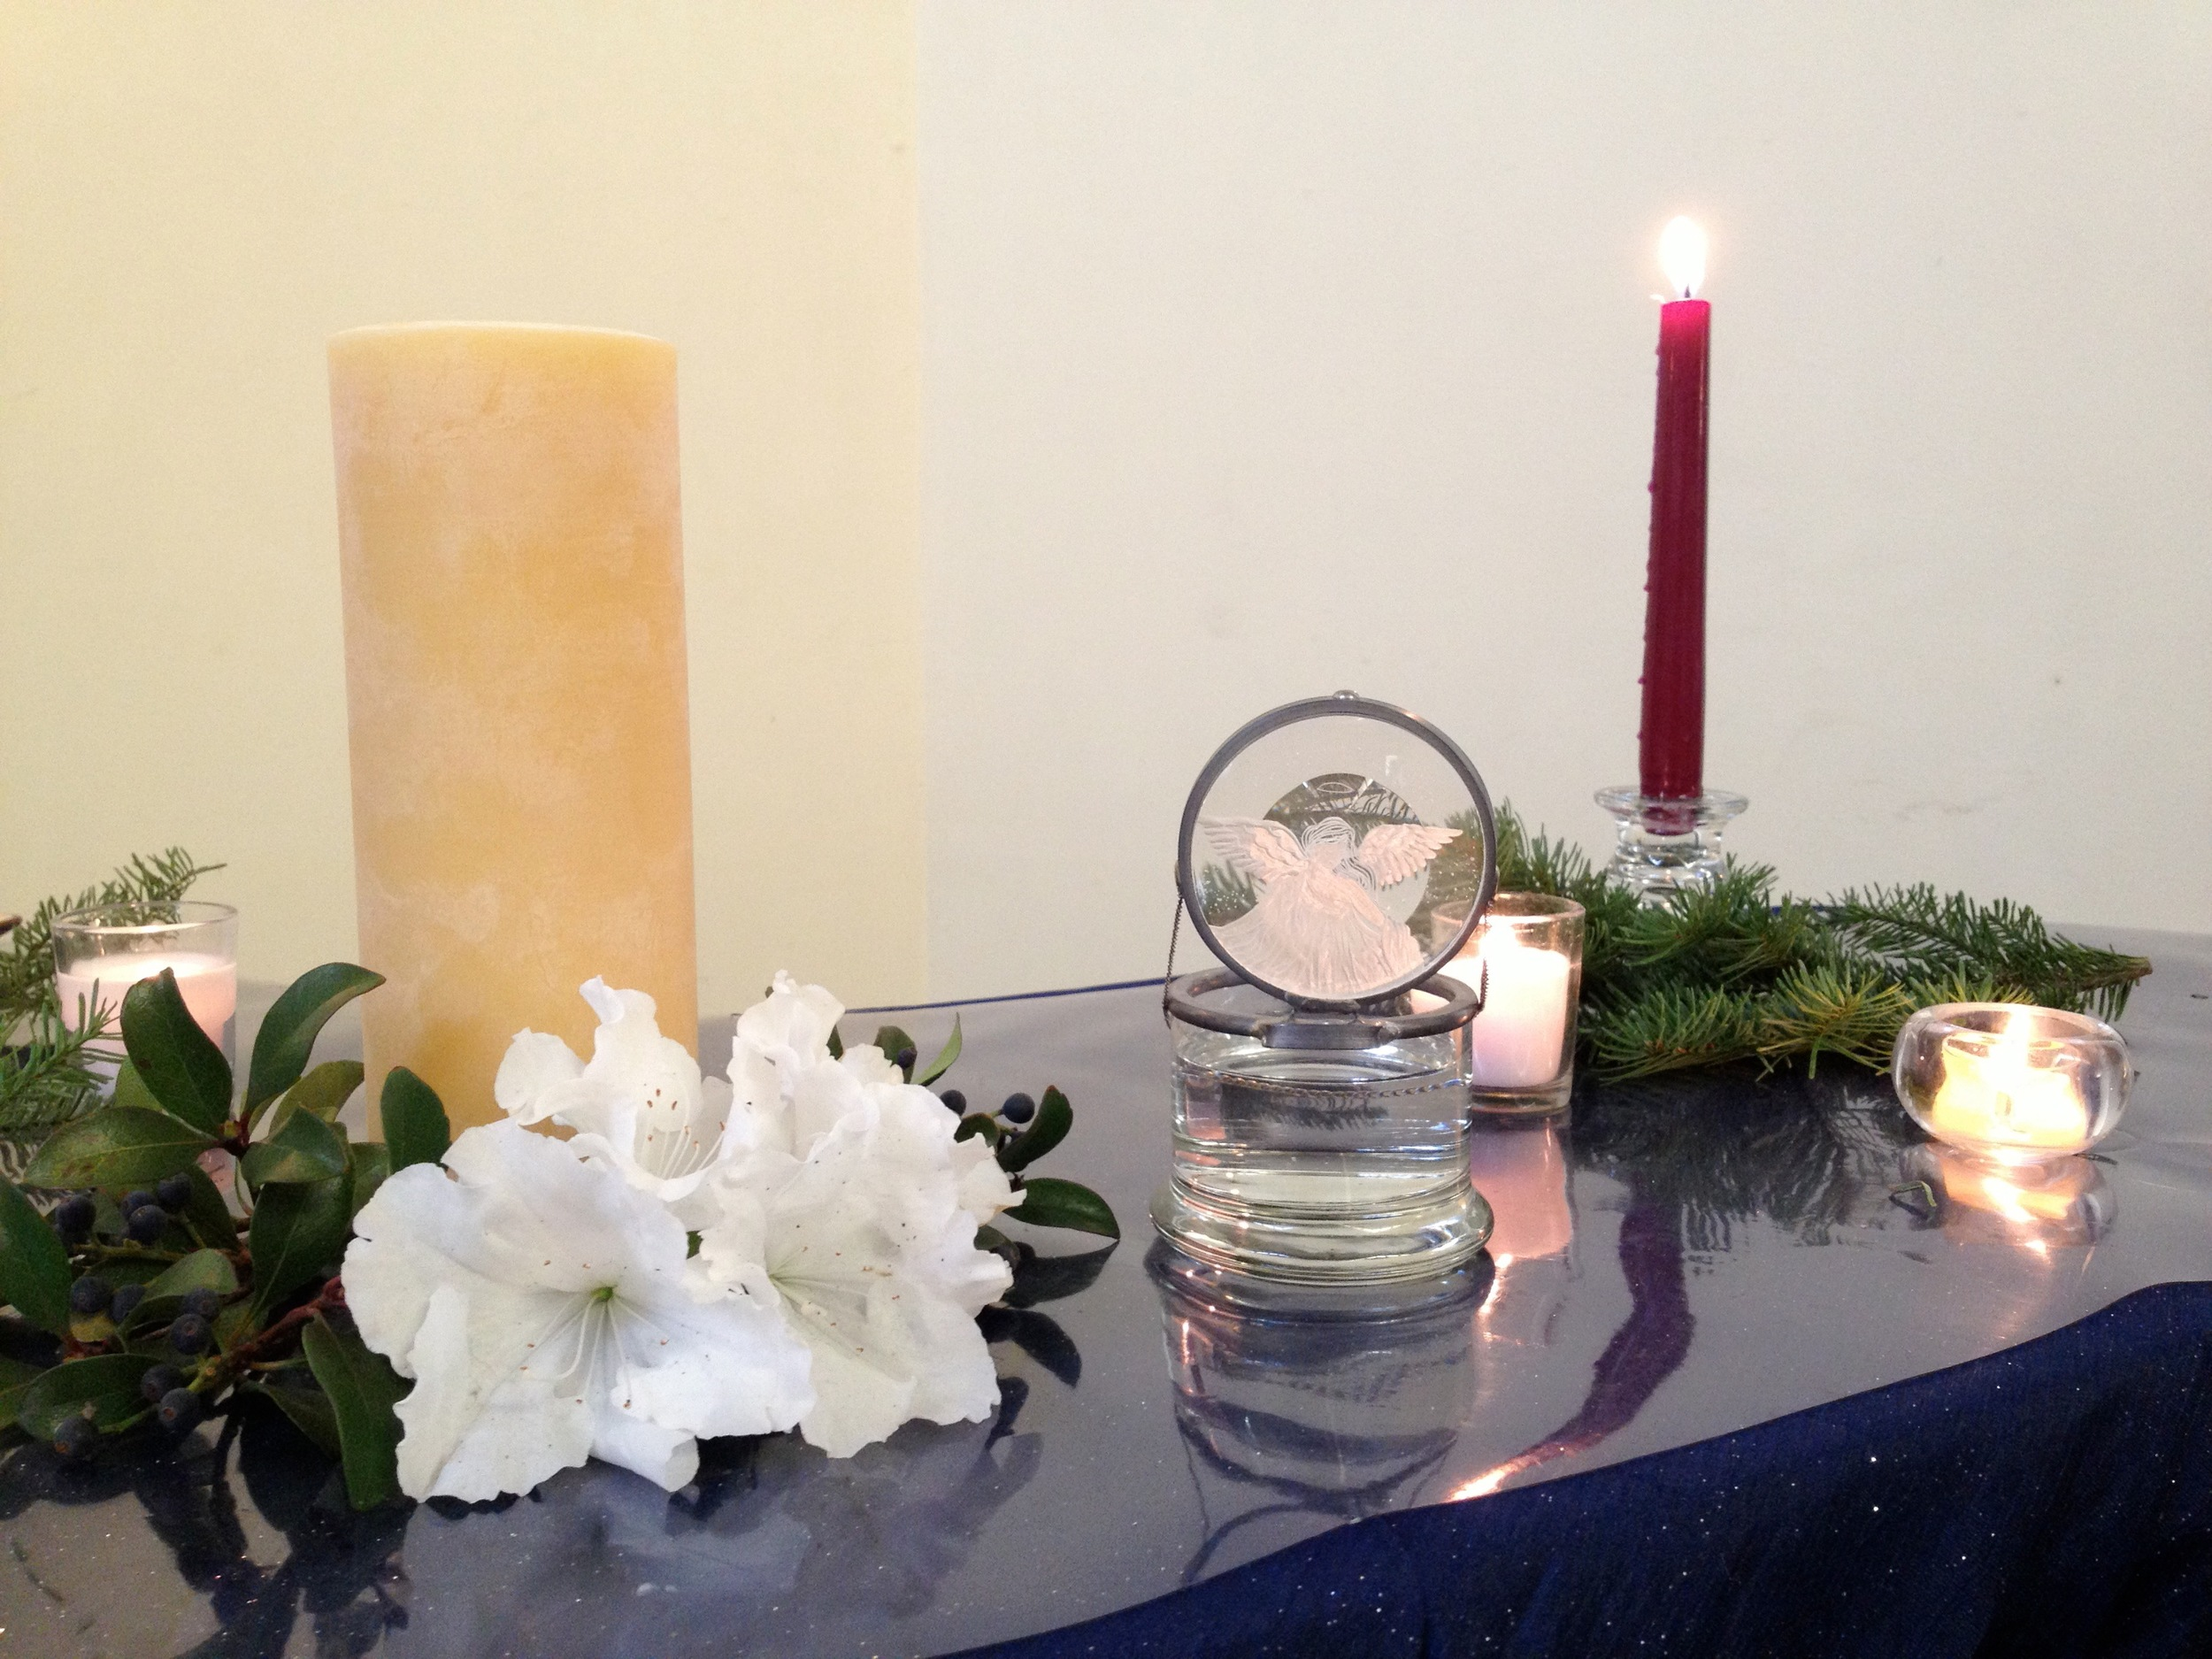 Altar decorated for advent